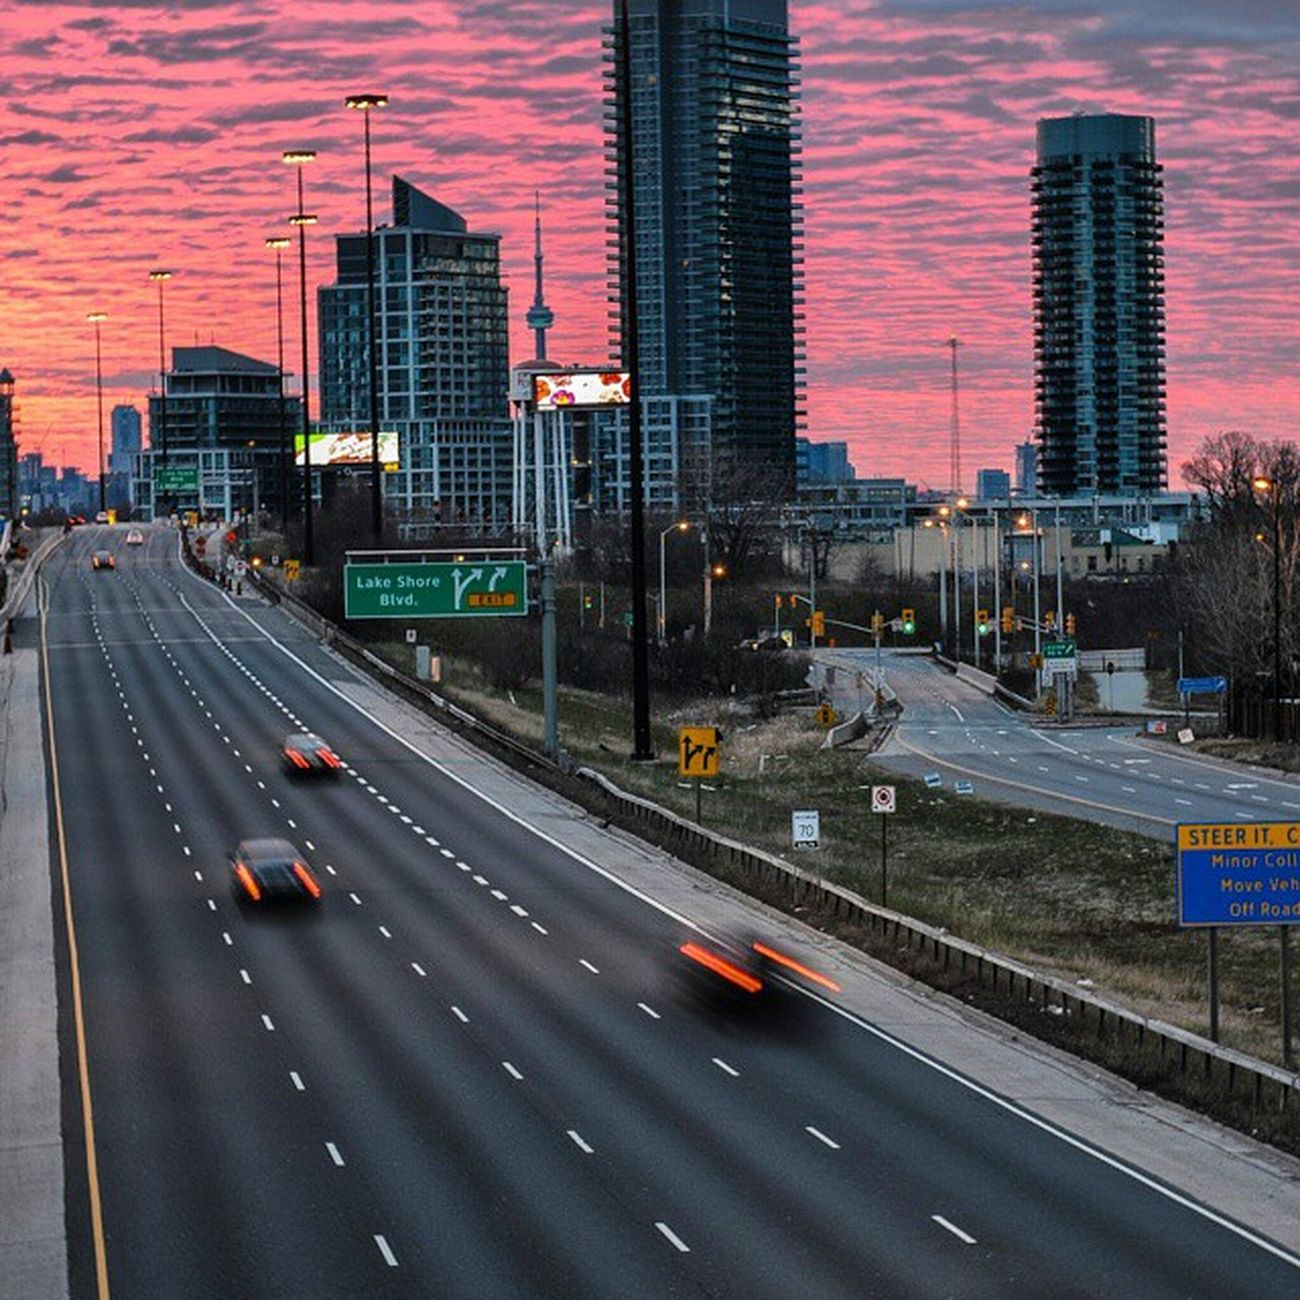 The sky on my drive in this morning. Early Sunrise Beautiful Commuter Toronto Bigcitylife Clouds Highway Cntower Ontario Canada Nofilter Nikonphotography Nikon Digitalphotography Noeffect Cars Lovetocreatepictures Lovetotakepictures Rrhurstphotography Latowphotographersguild